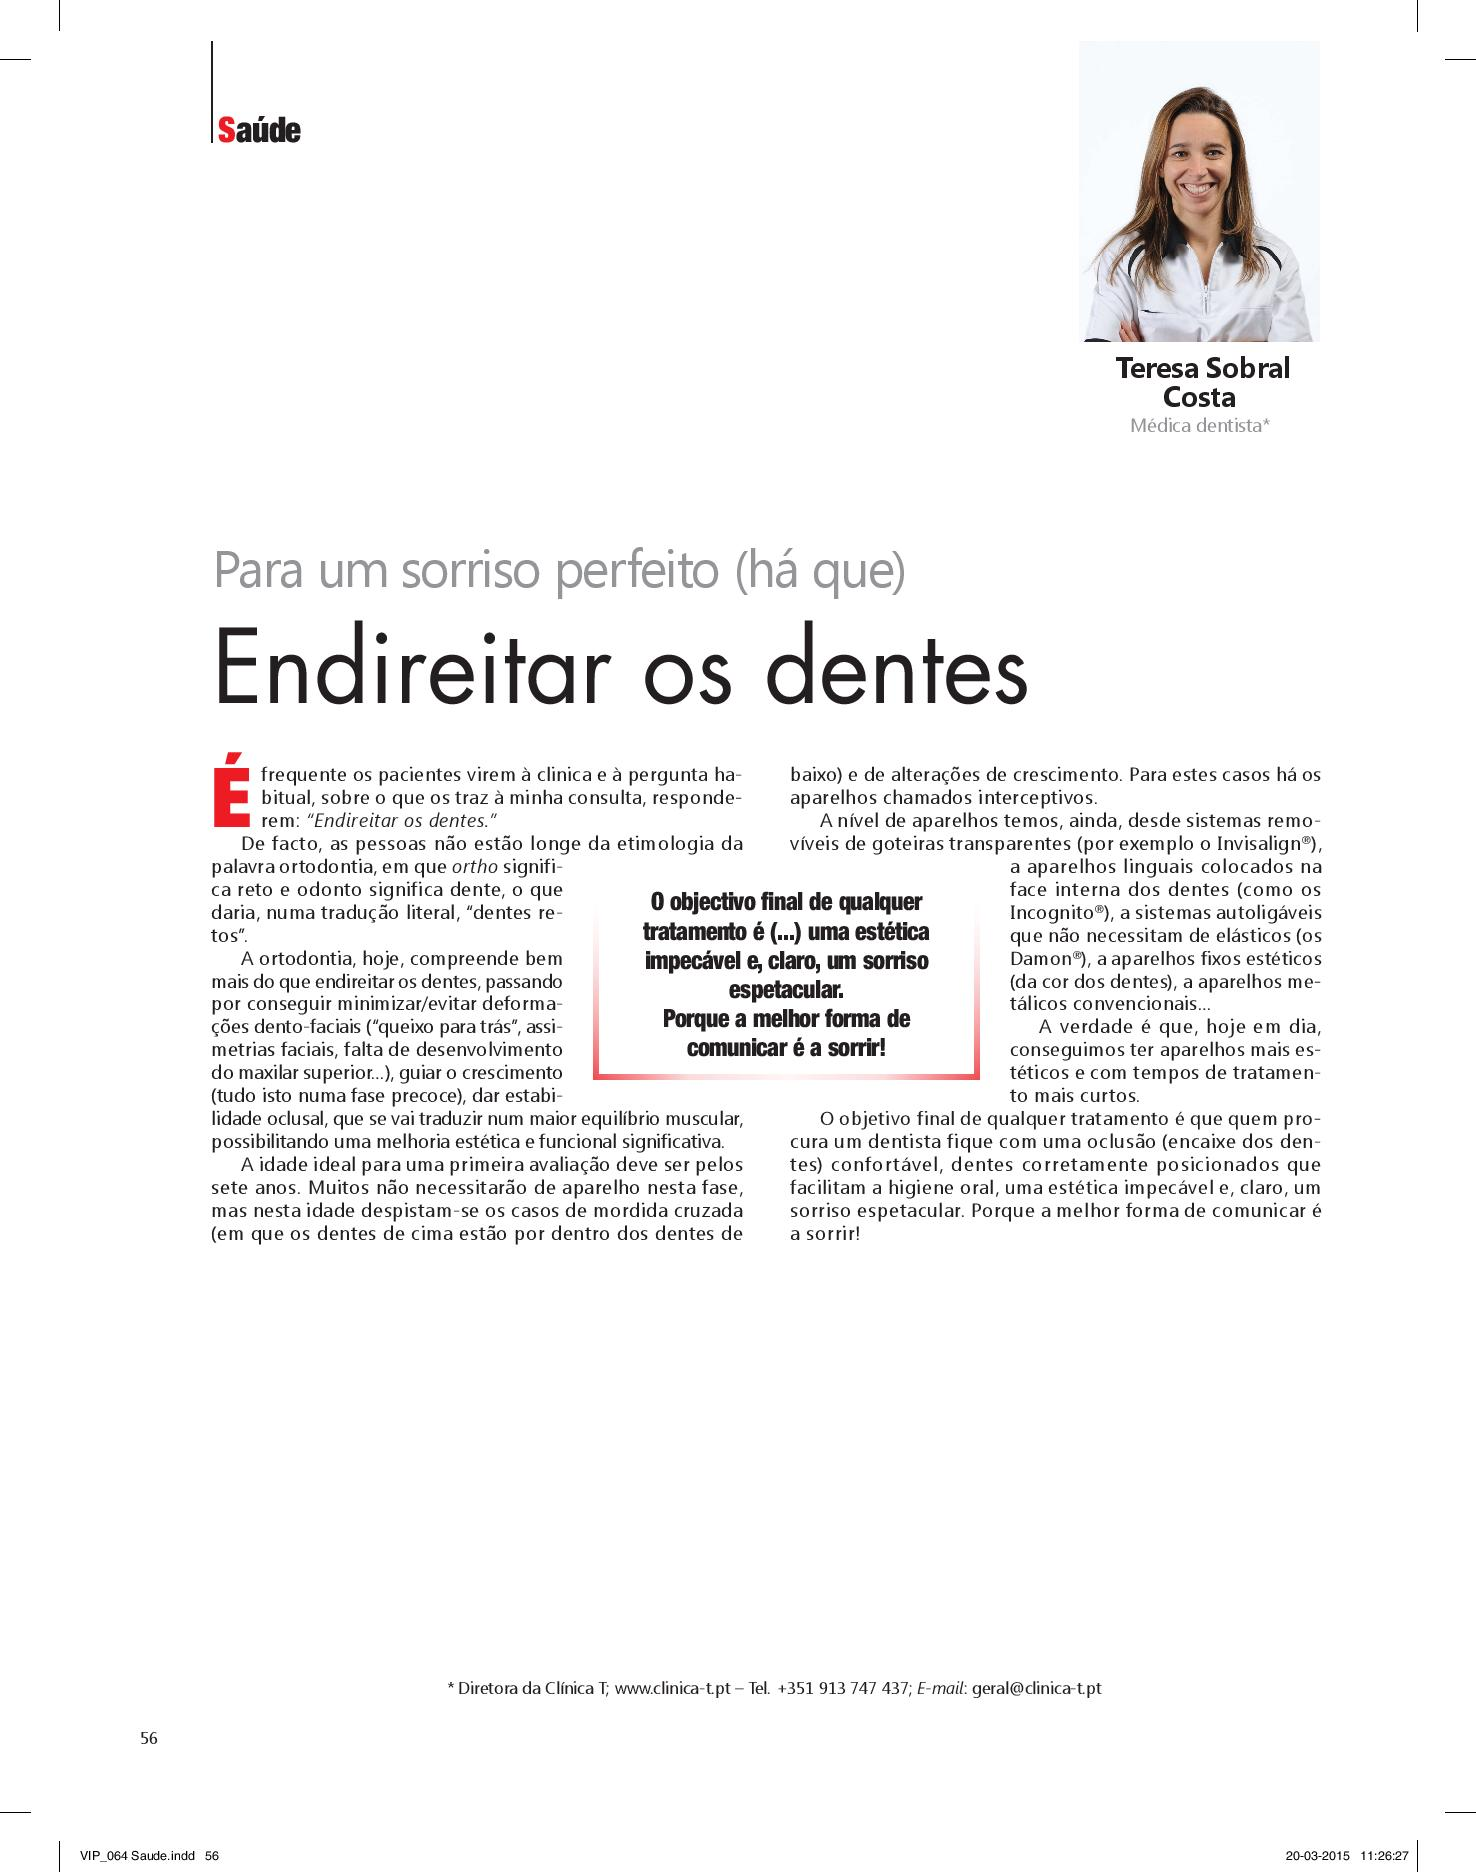 Clinica T - Revista Vip : Endireitar os dentes